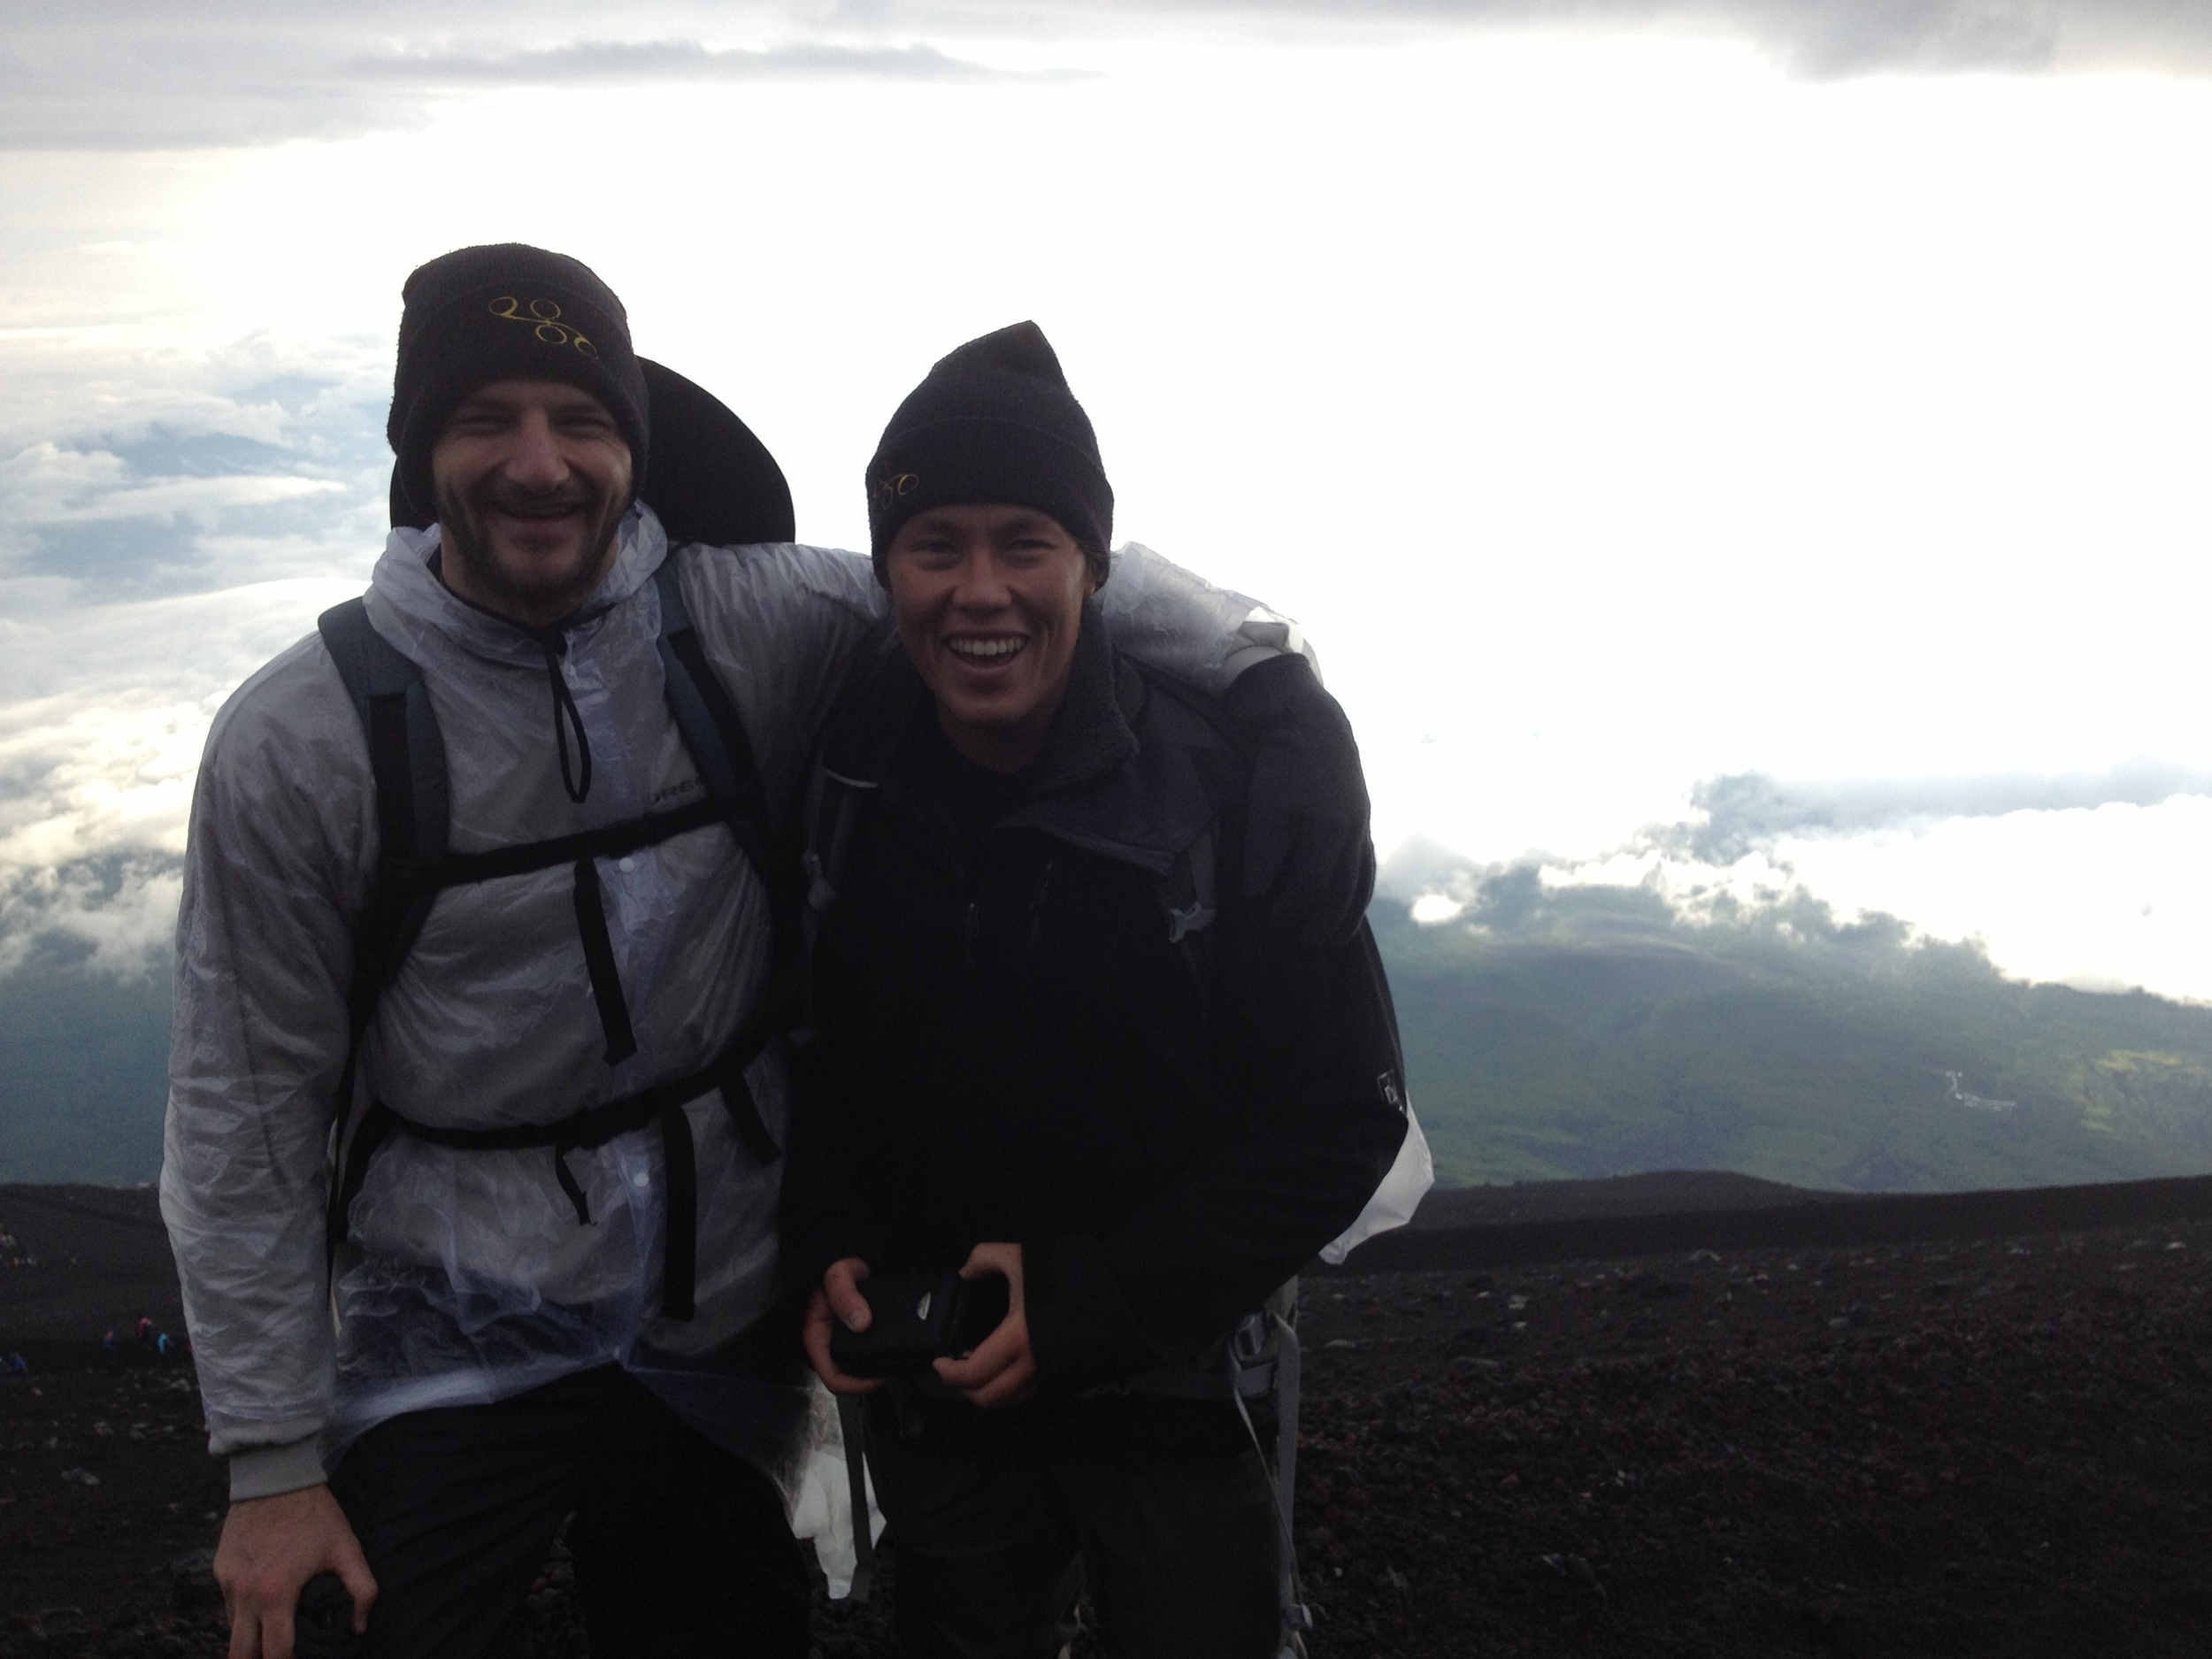 Miles and Aki on the summit of Mount Fuji